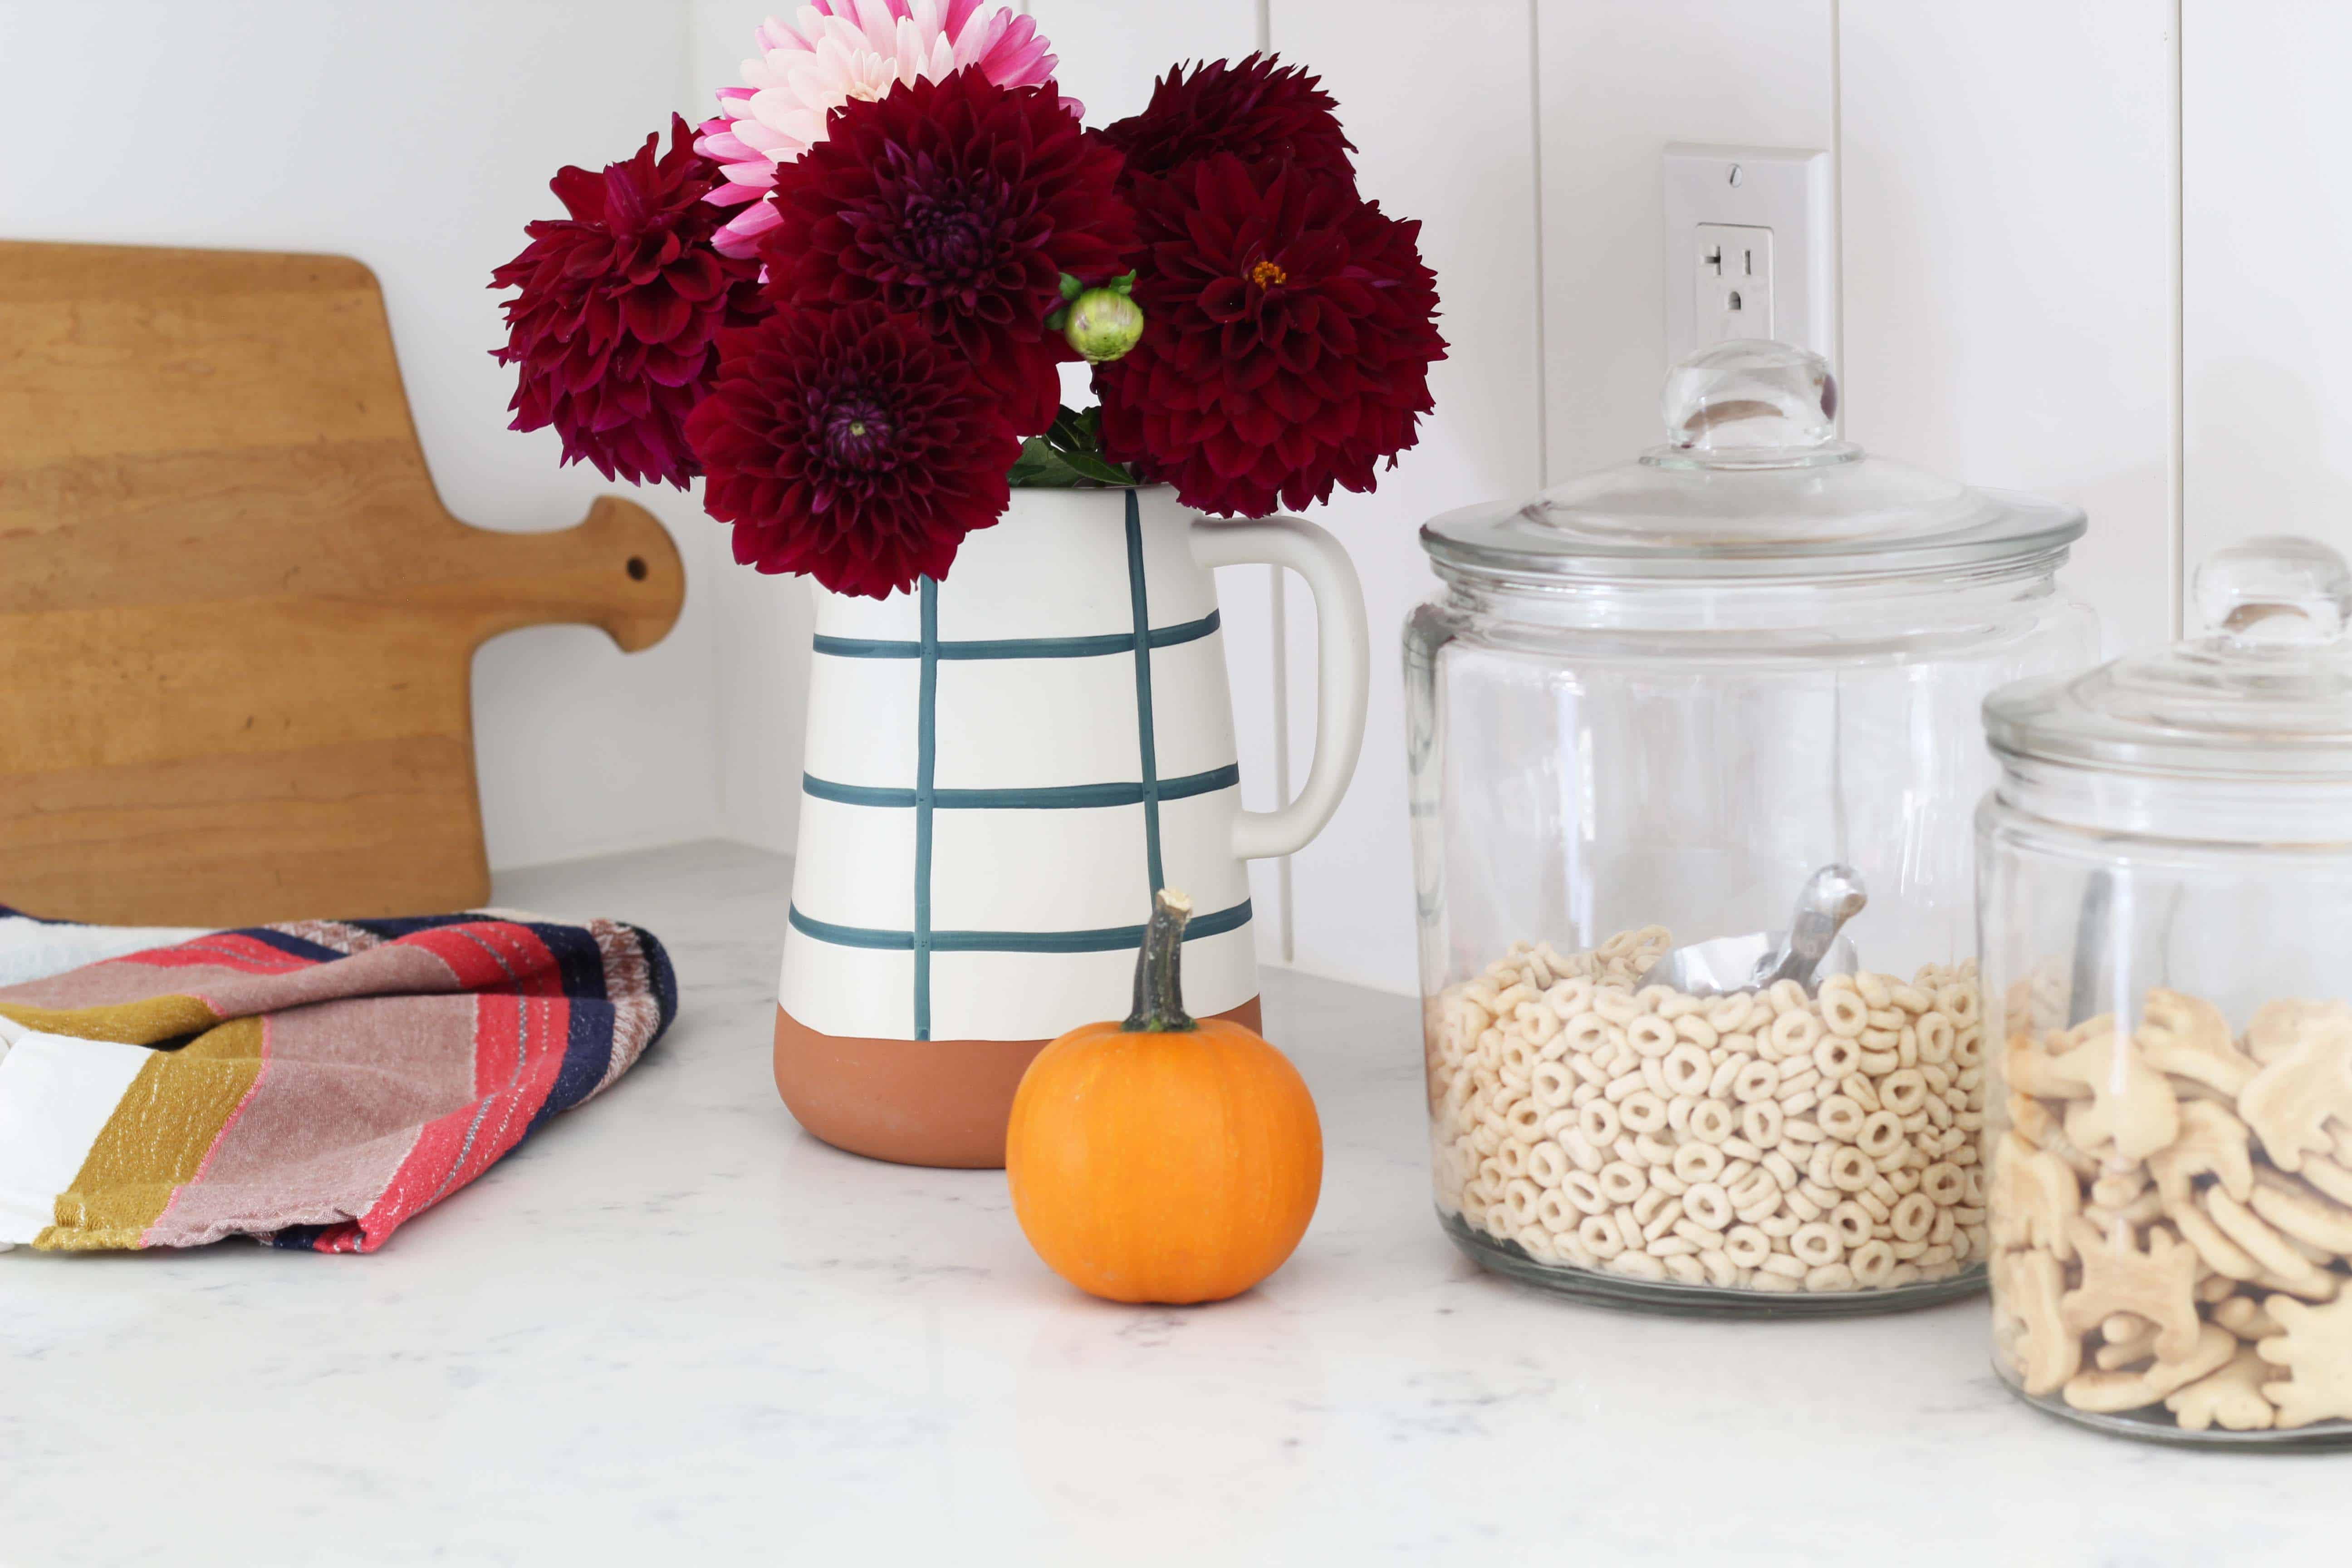 fall mums in threshold magnolia home pitcher, mini pumpkin decor, cheerios in glass canister